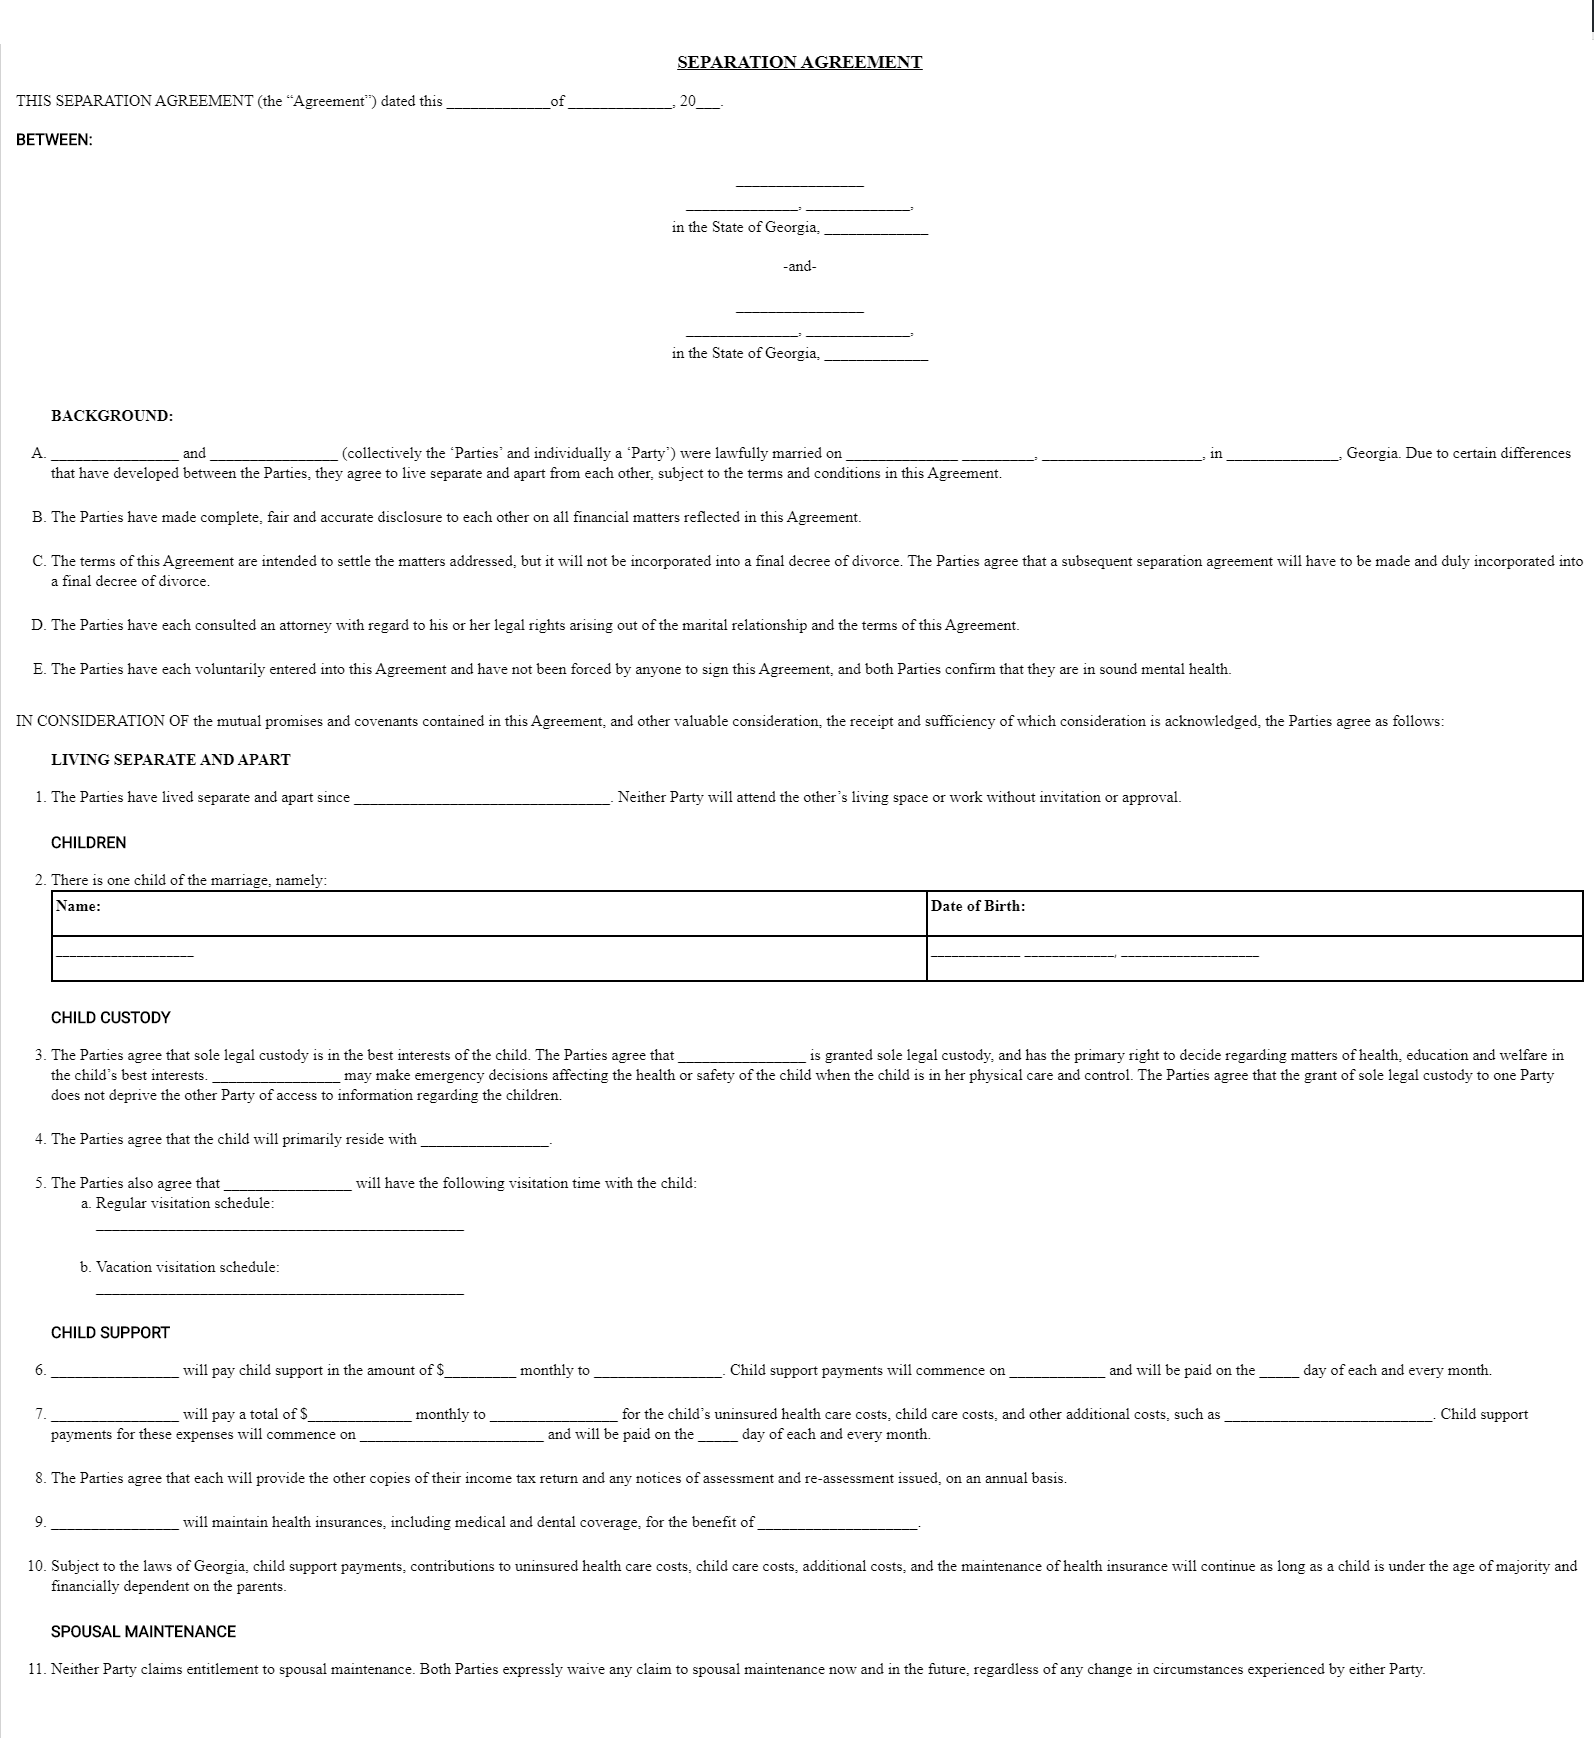 Georgia Marital Separation Legal Agreement Forms GA